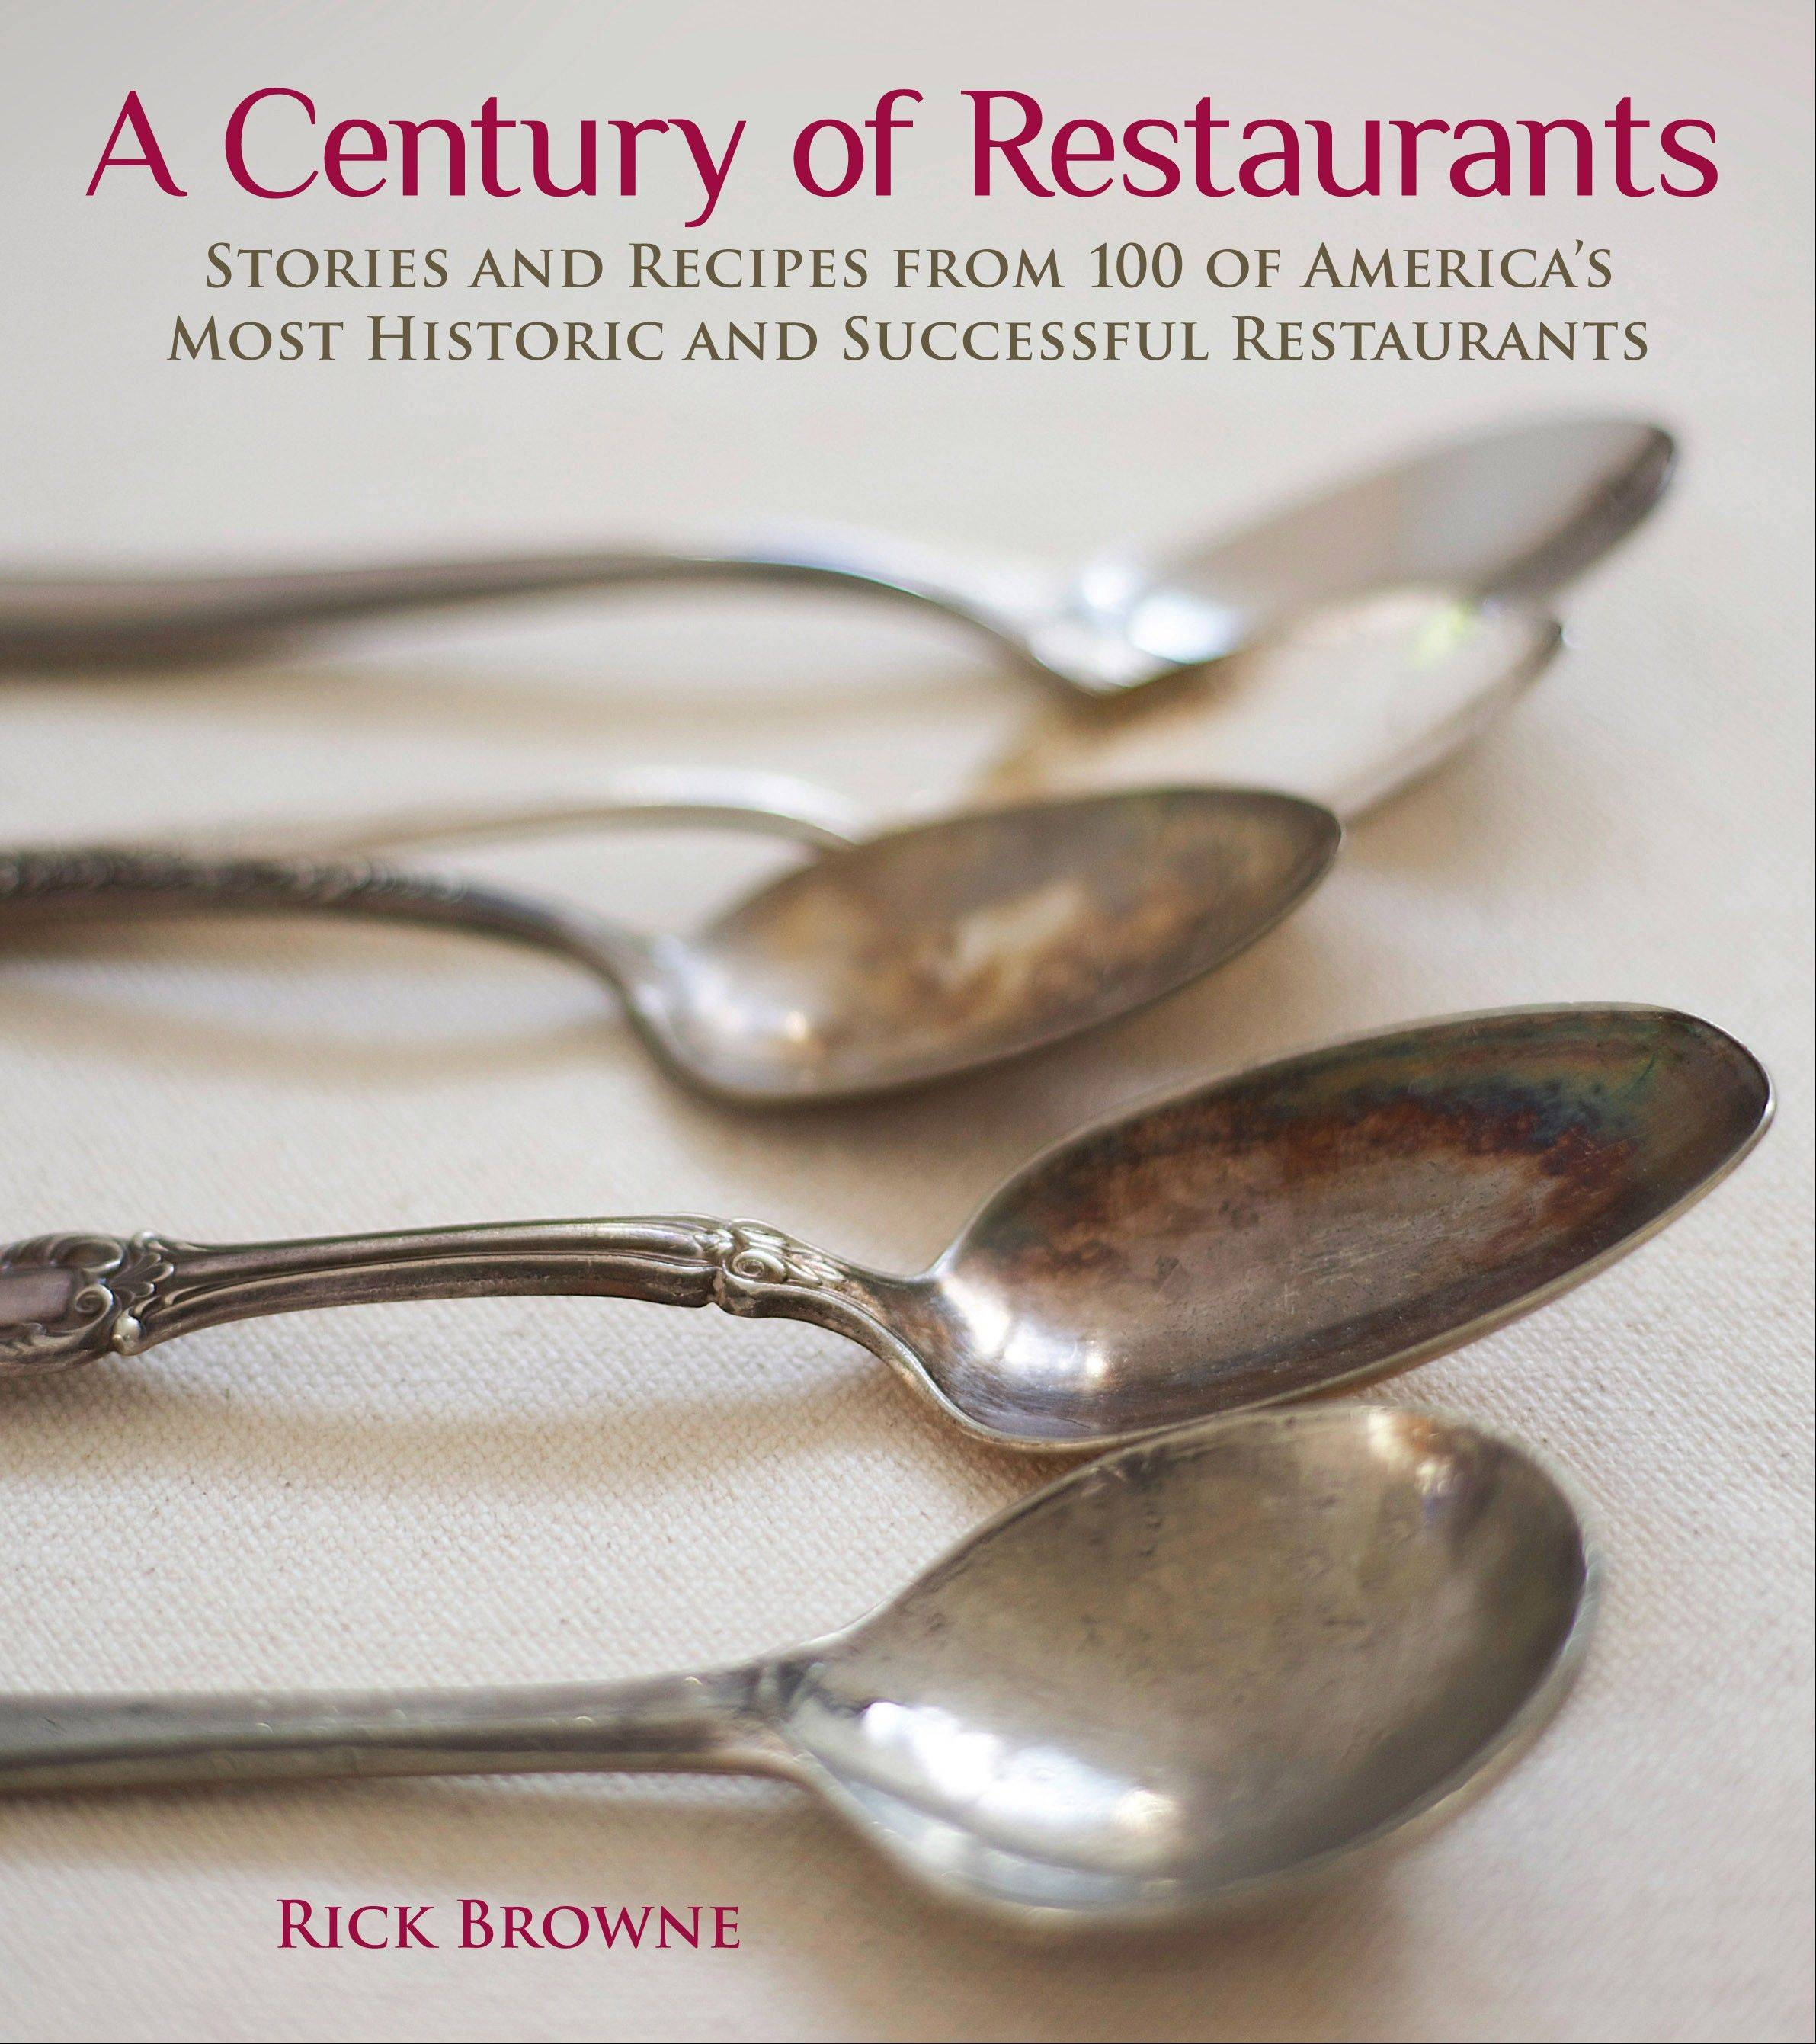 """A Century of Restaurants: Stories and Recipes from 100 of America's Most Historic and Successful Restaurants"" by Rick Browne"